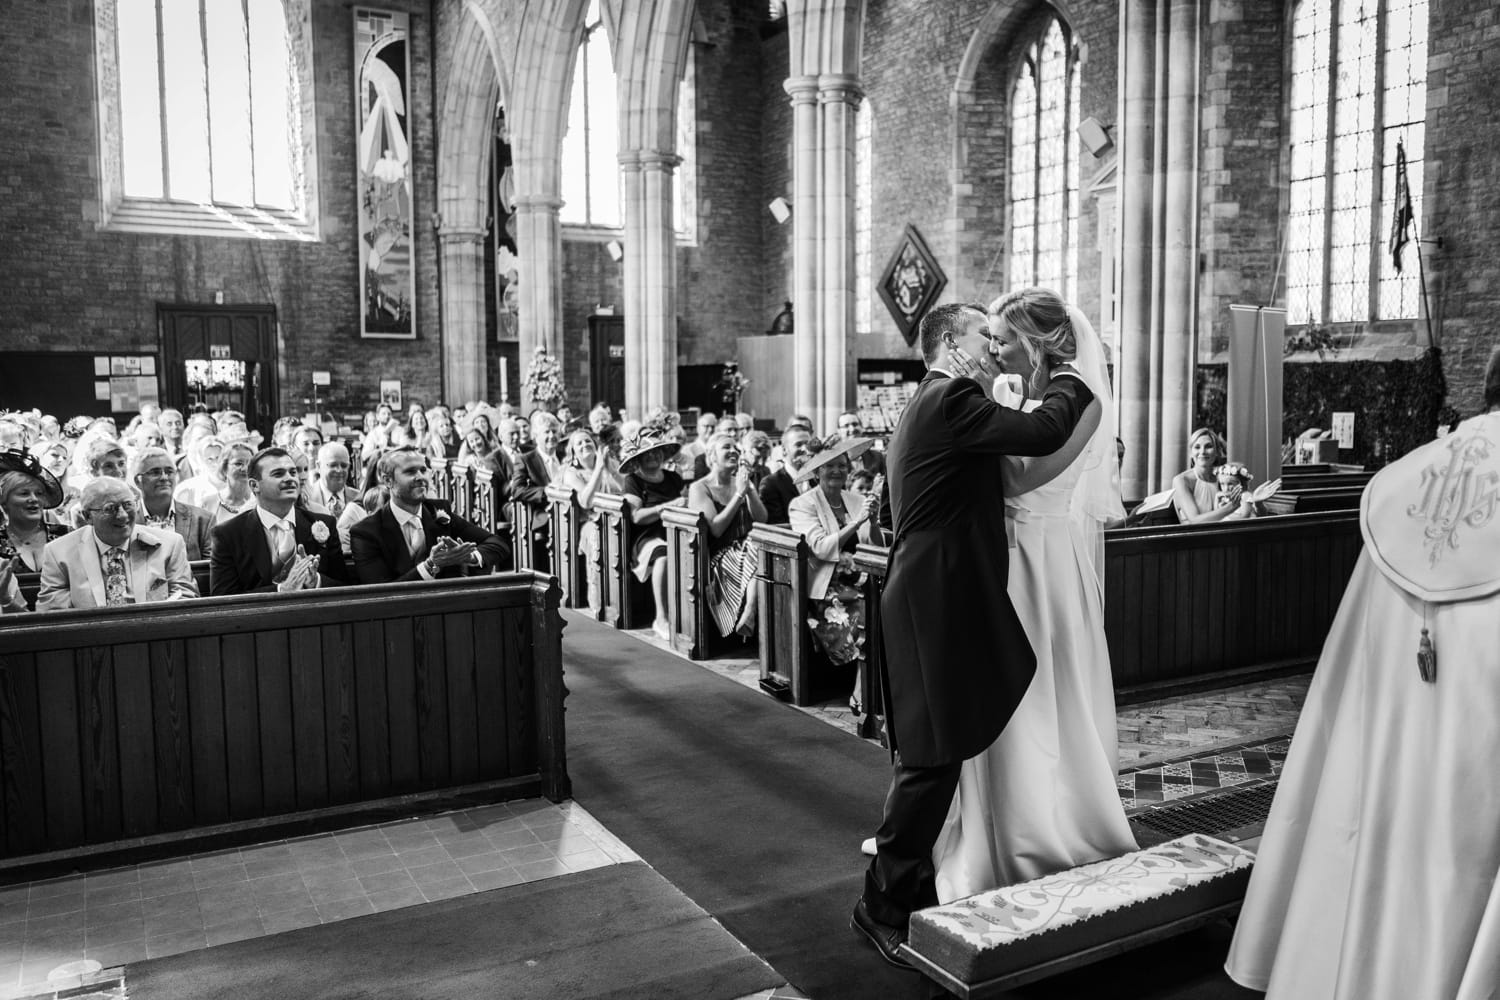 Marriage ceremony at St Marys Church in Abergavenny in South Wales